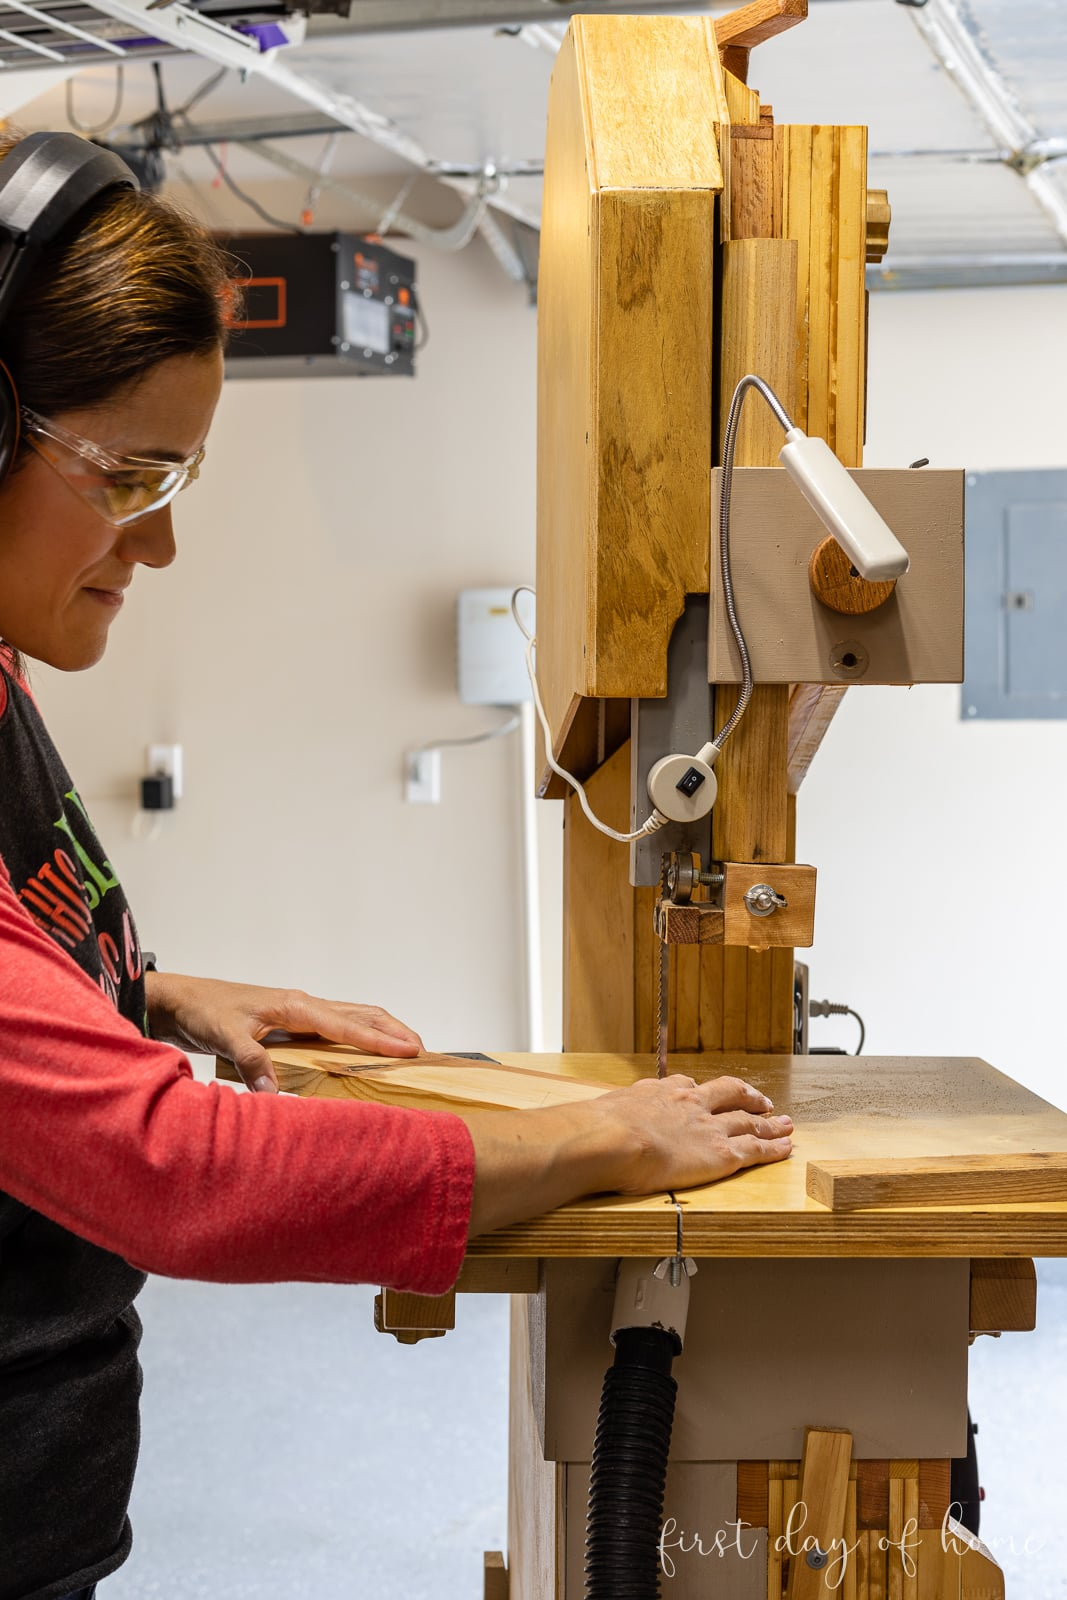 Crissy using a band saw to create wooden cutouts from scrap wood